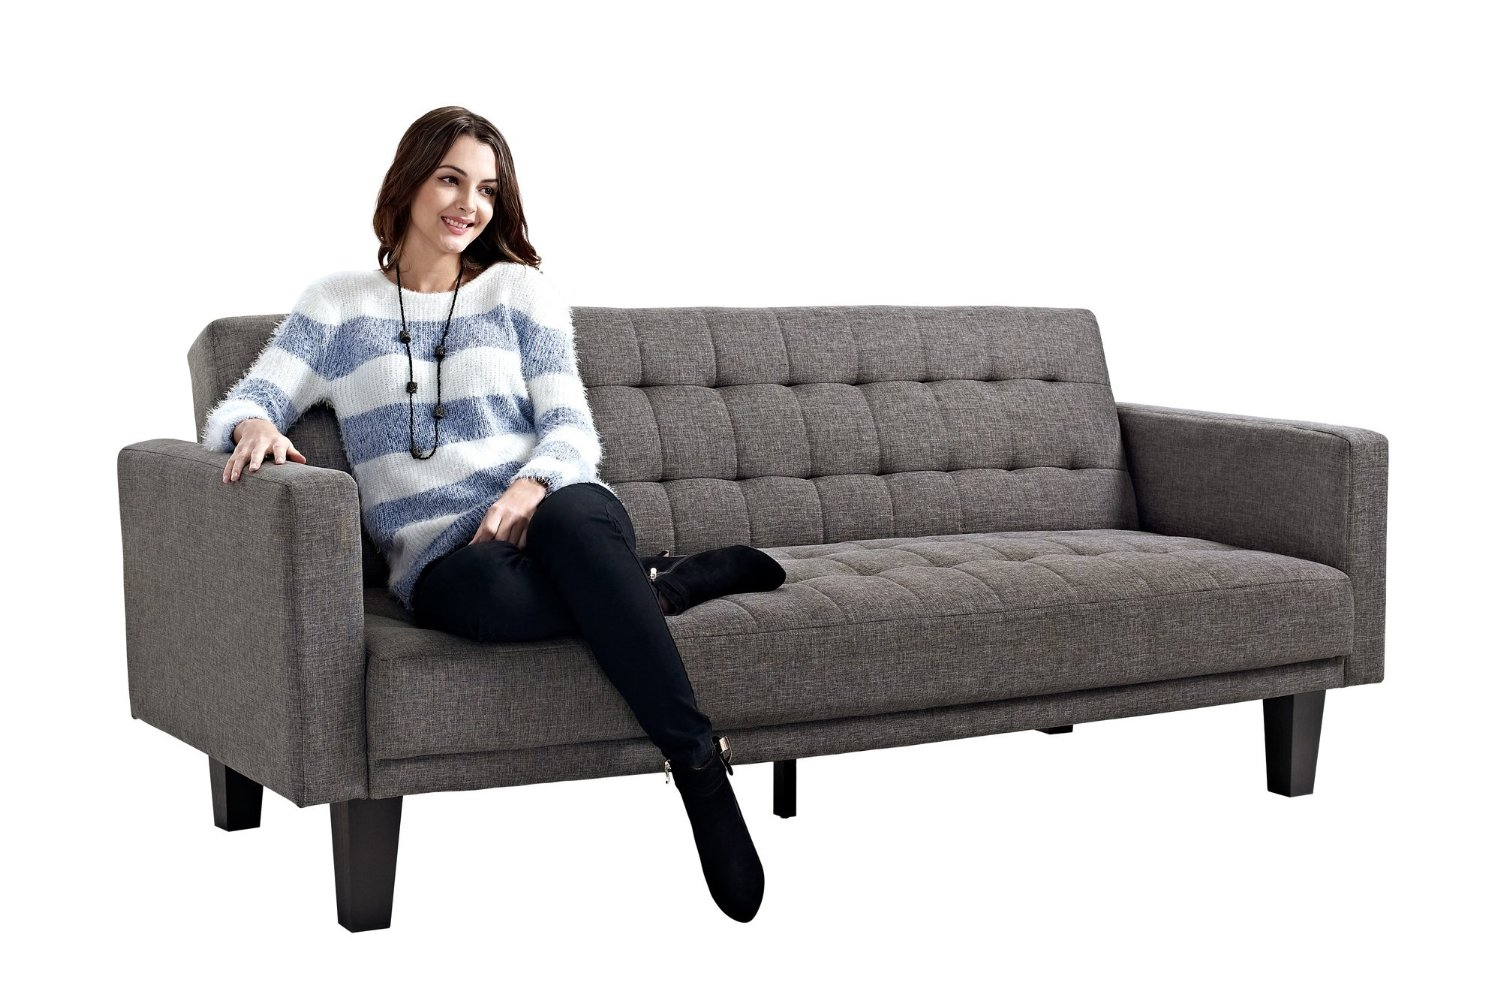 Top 10 Best Sleeper Sofa Reviews Get The Perfect One 2018